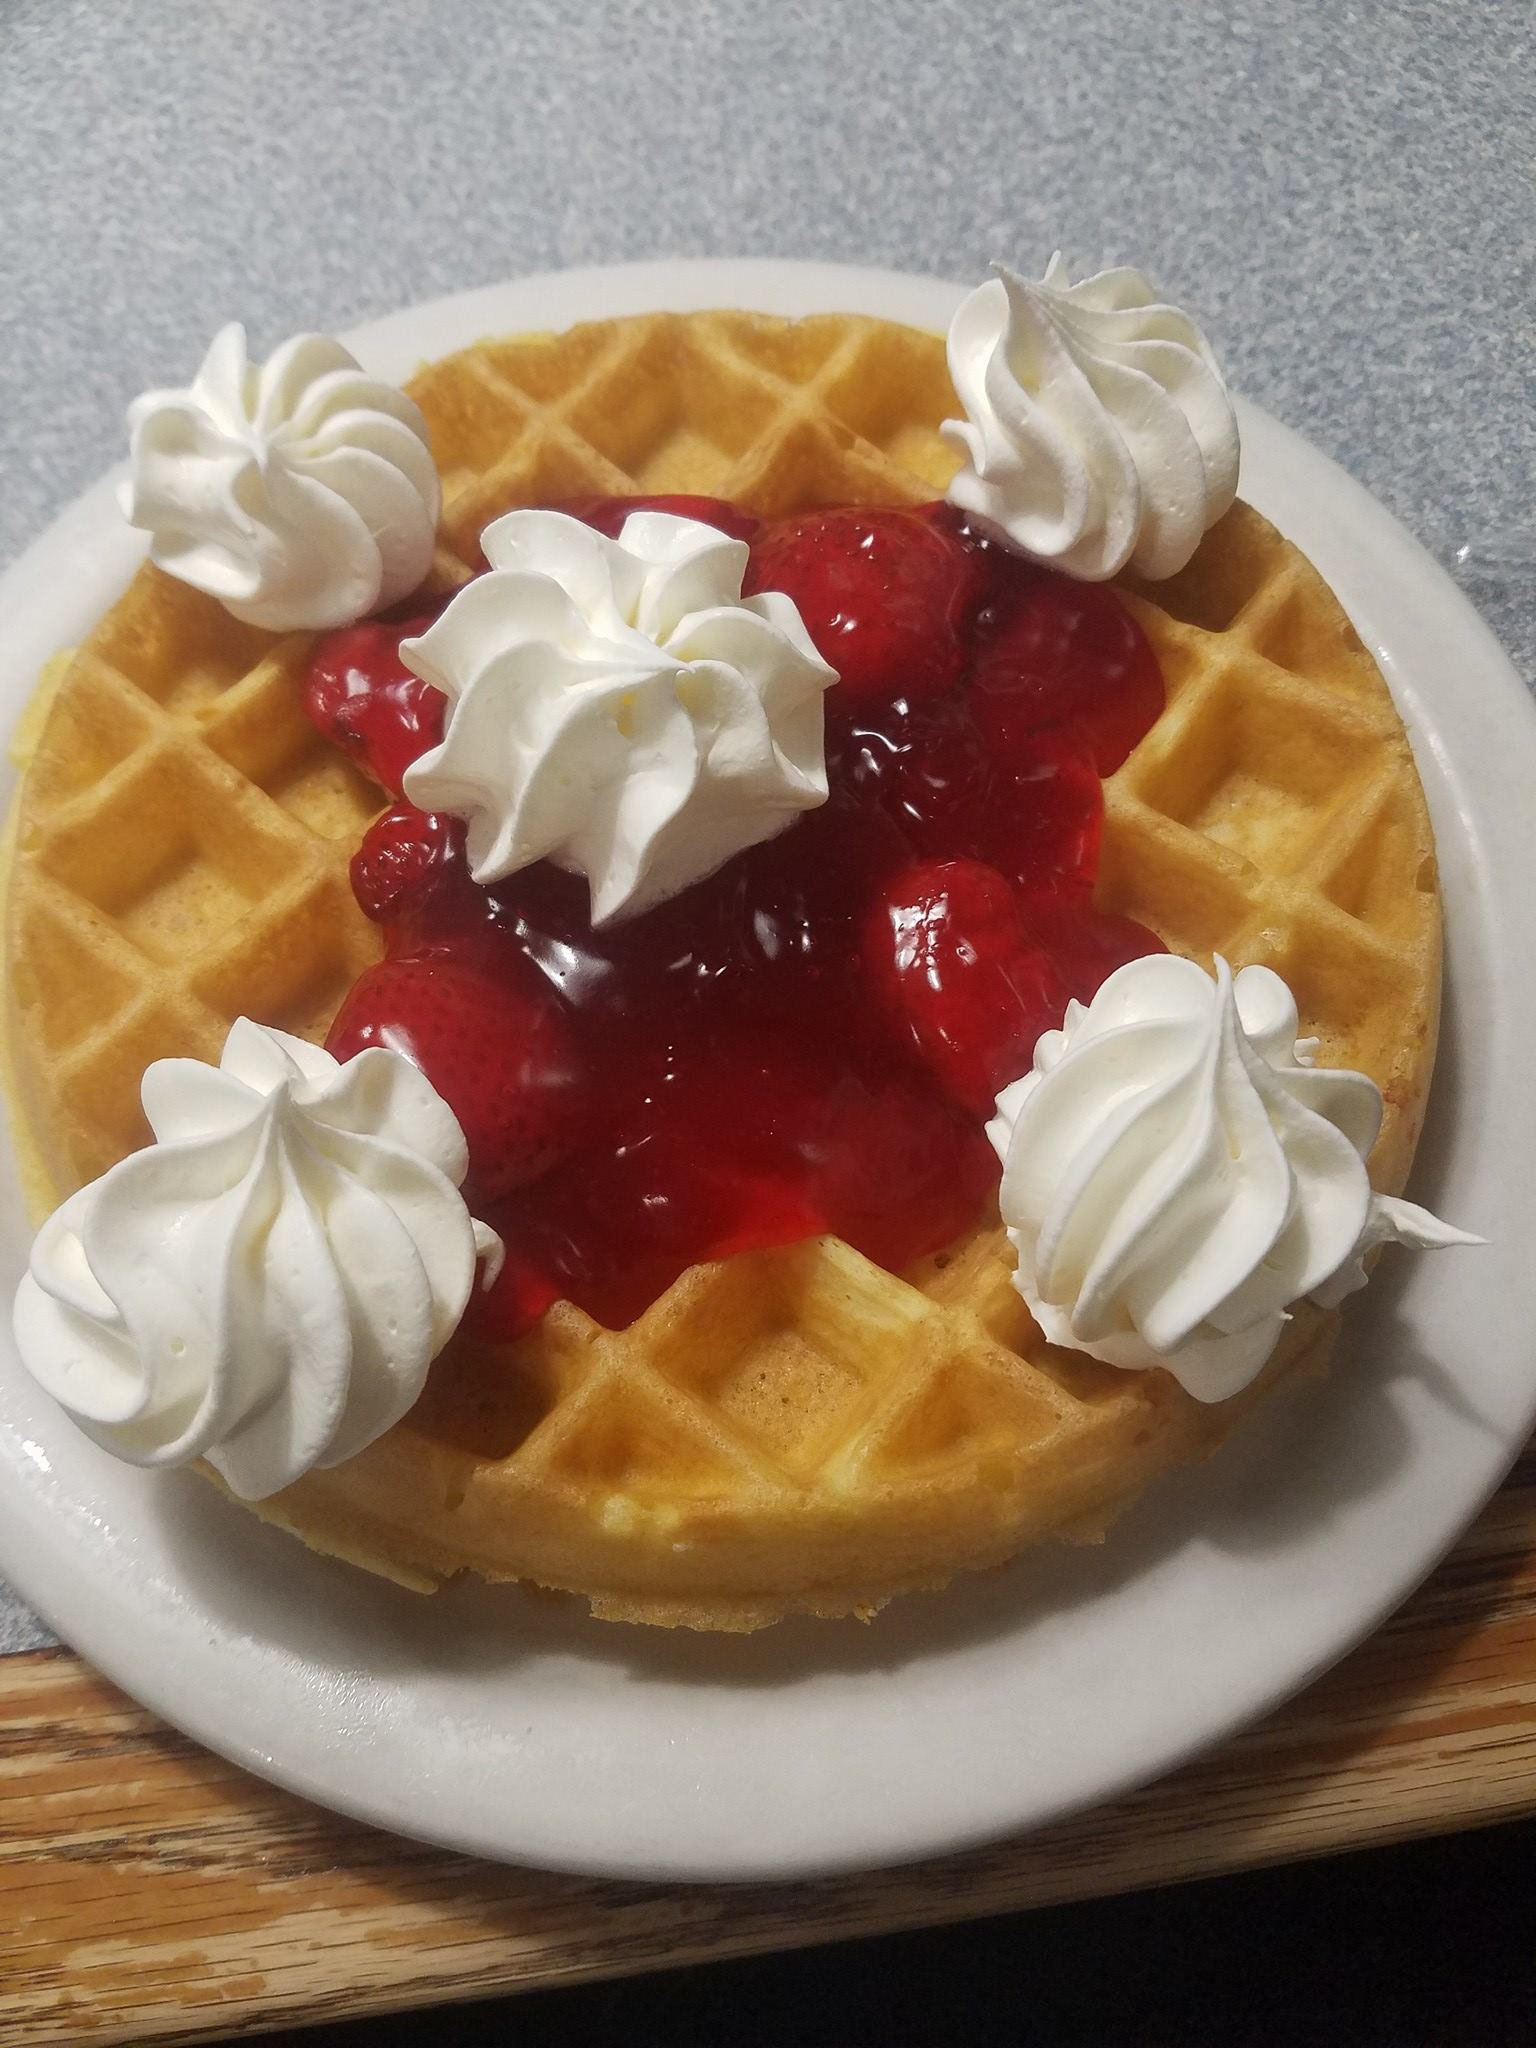 Belgian waffles can come with whipped cream or fruit toppings and are known to be a real treat at this Ozark restaurant.